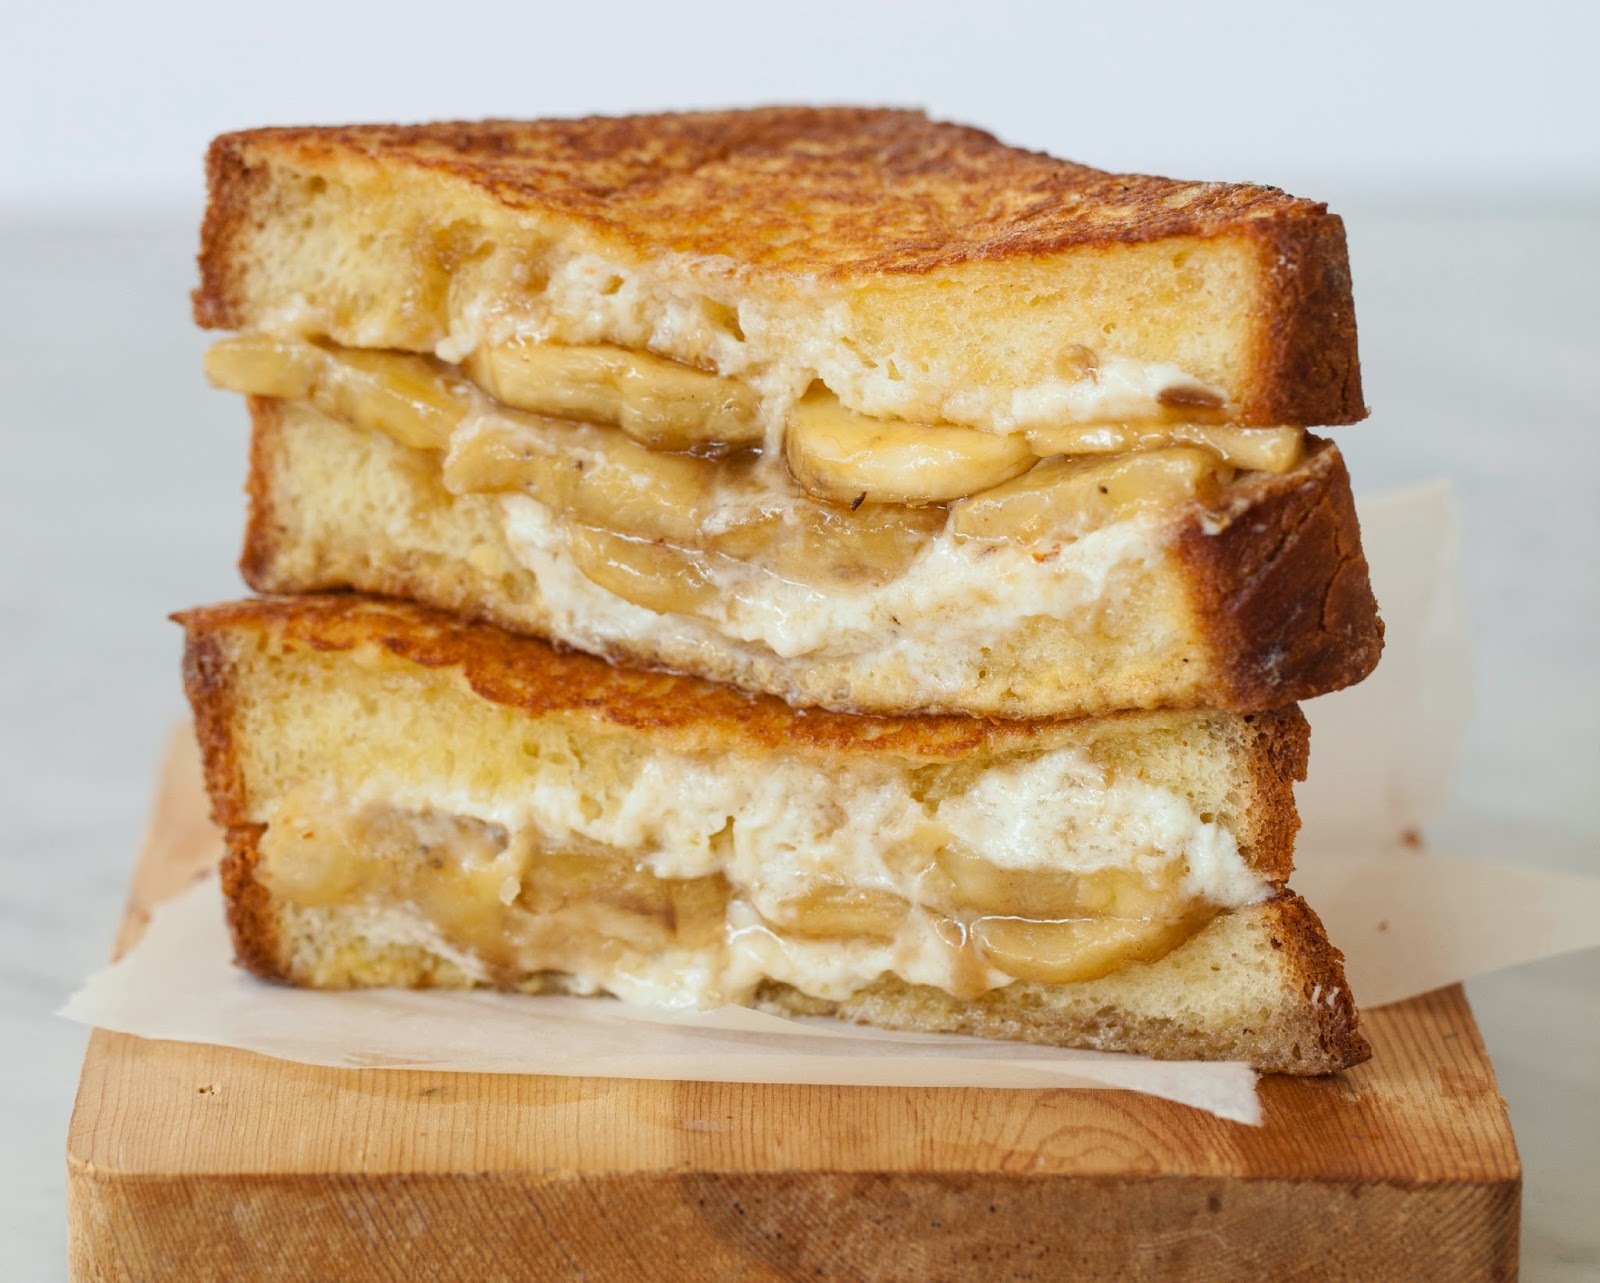 ... Grilled Cheese with cream cheese and mascarpone - Grilled Cheese